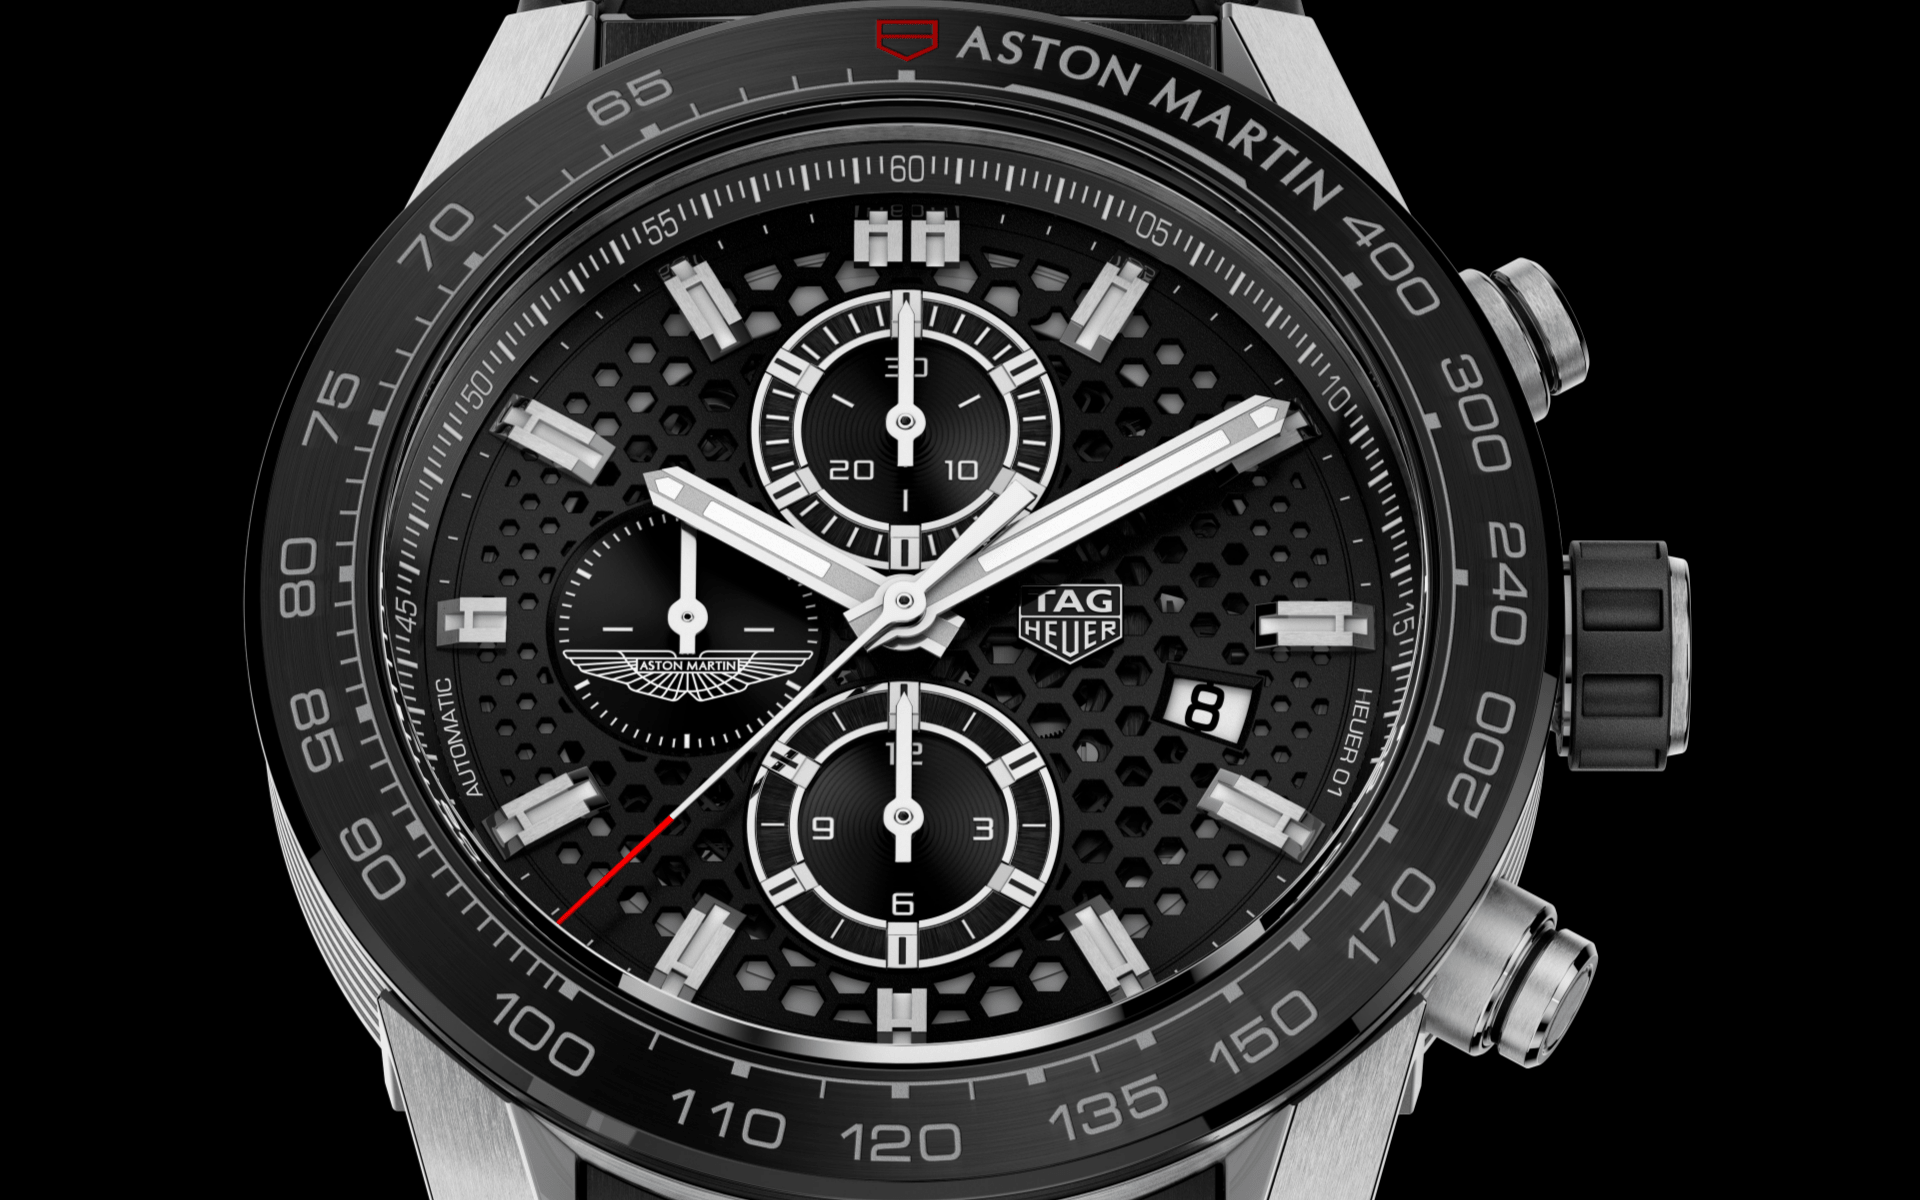 The Carrera Calibre Heuer 01 for Aston Martin features hexagonal cutouts on the dial (Photo: TAG Heuer)